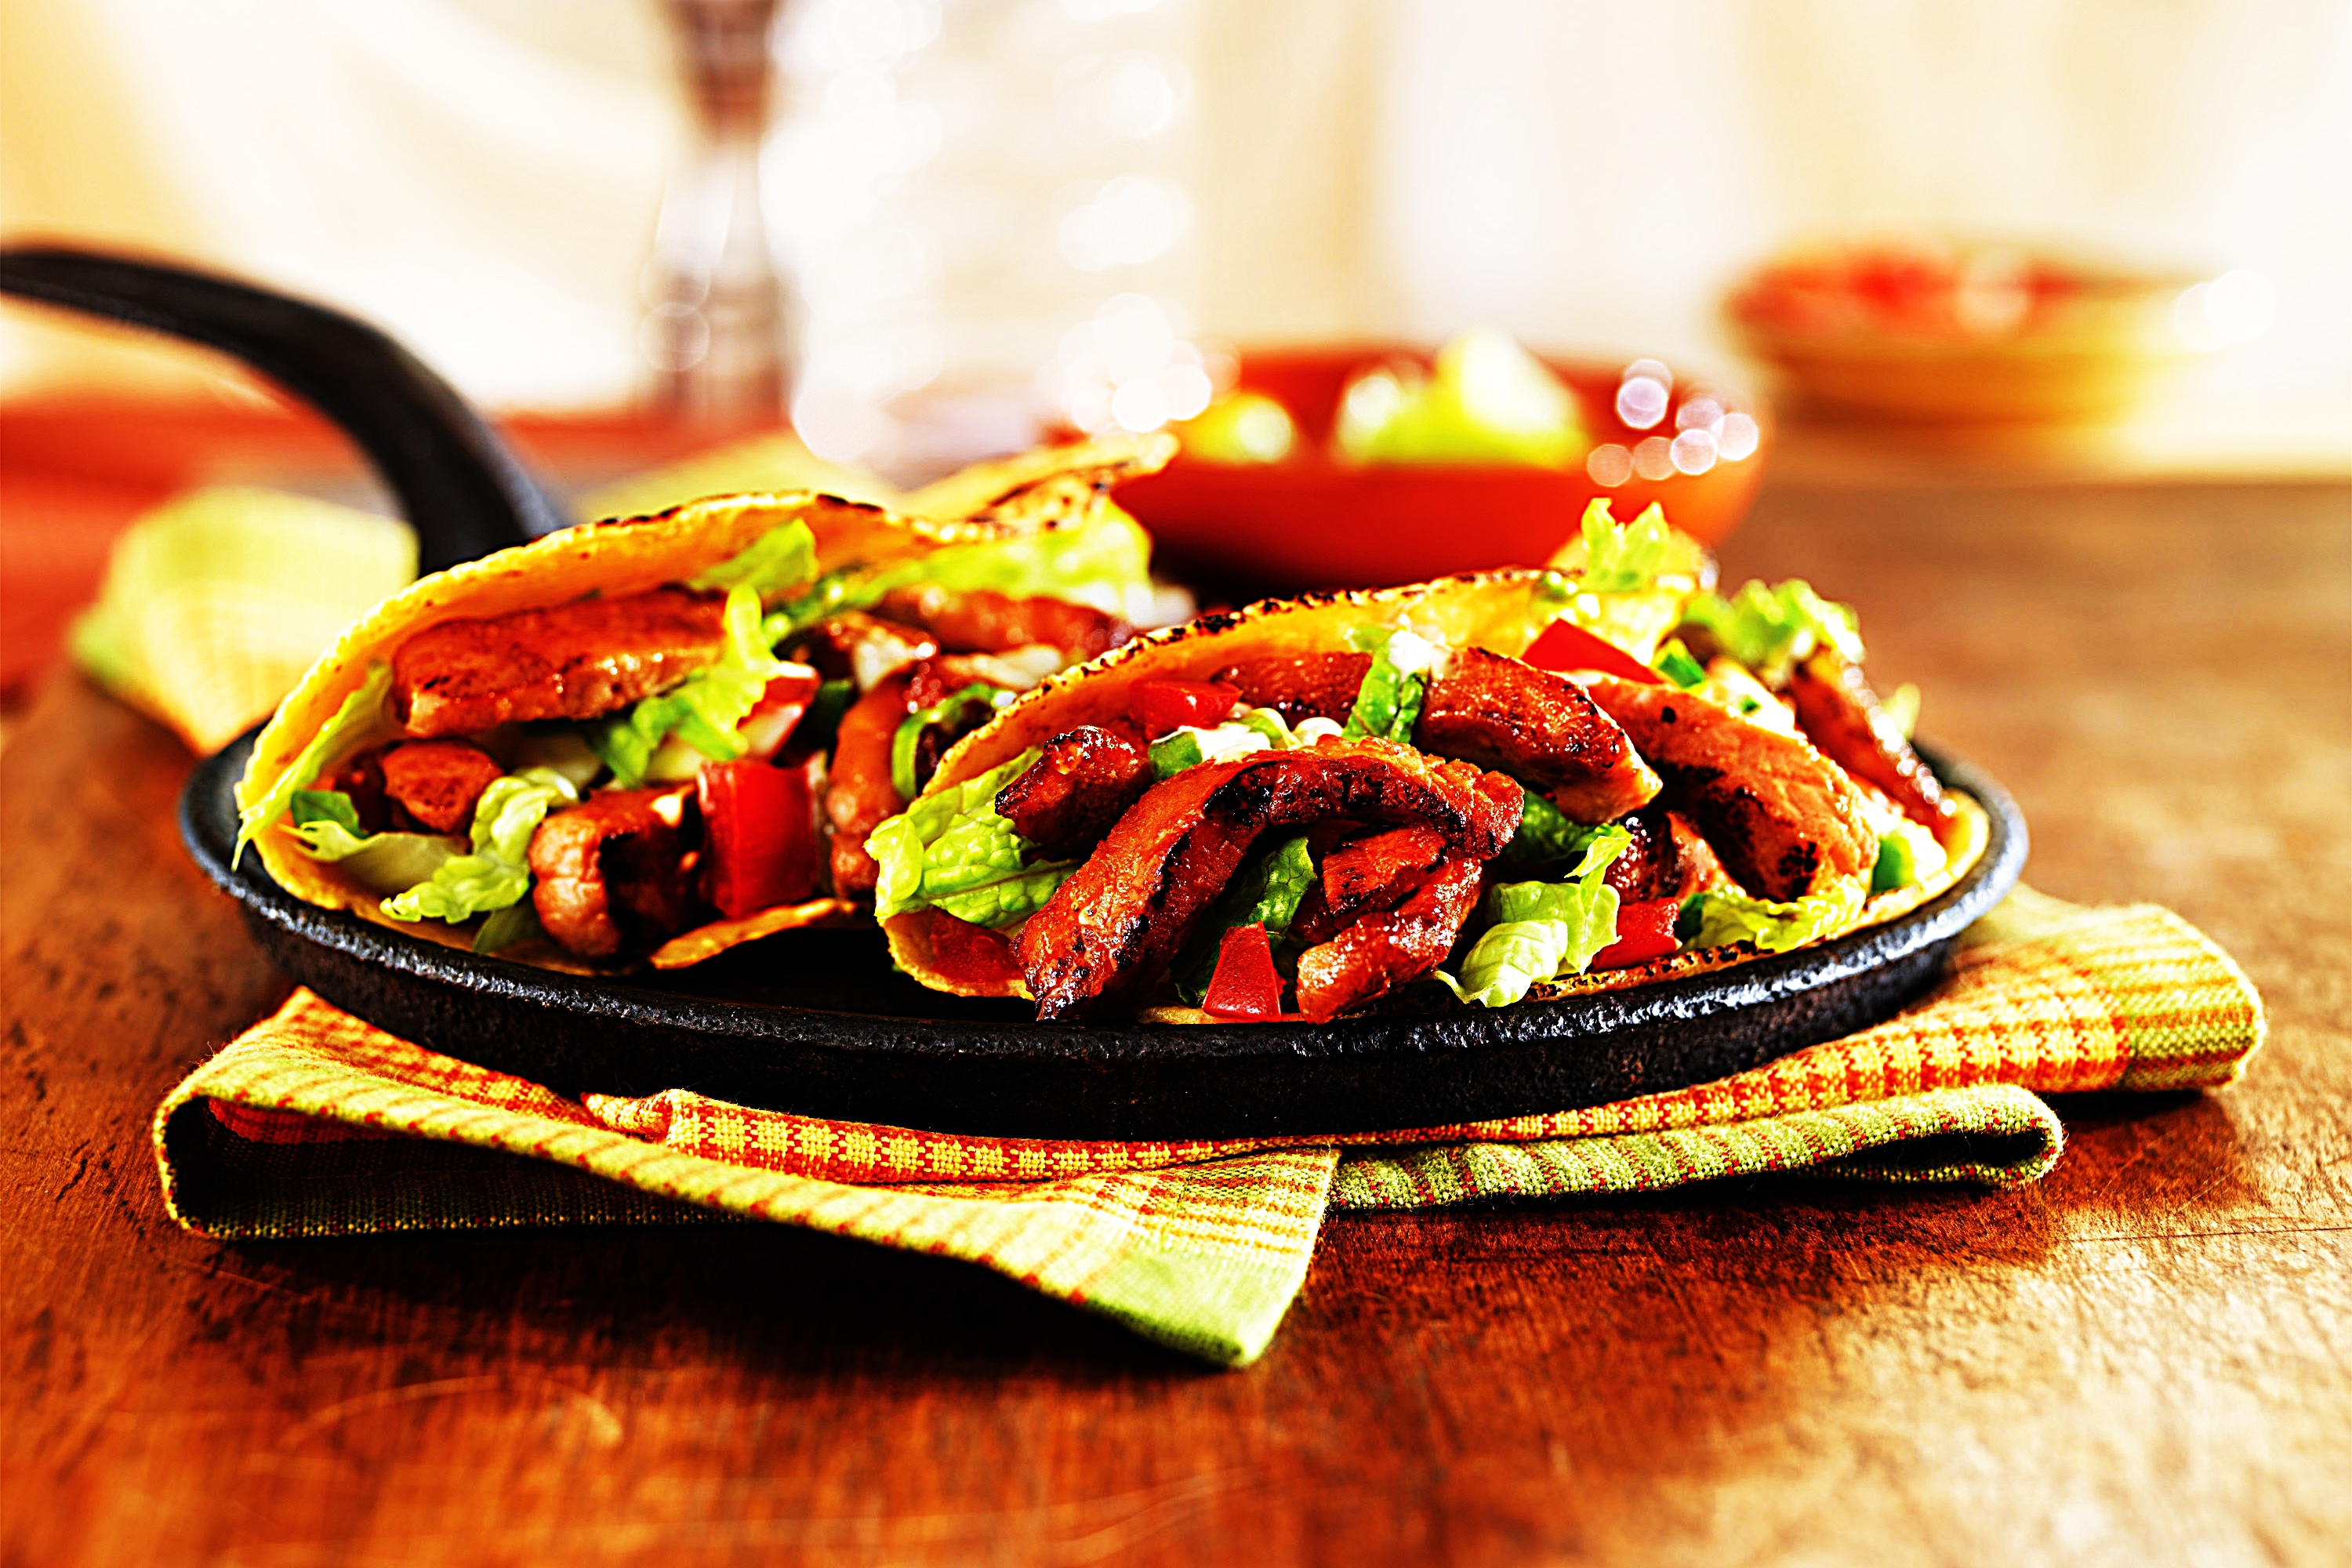 Stupid-Easy Recipe for Honey and Spice Sauteed Pork Hand Tacos (#1 Top-Rated)